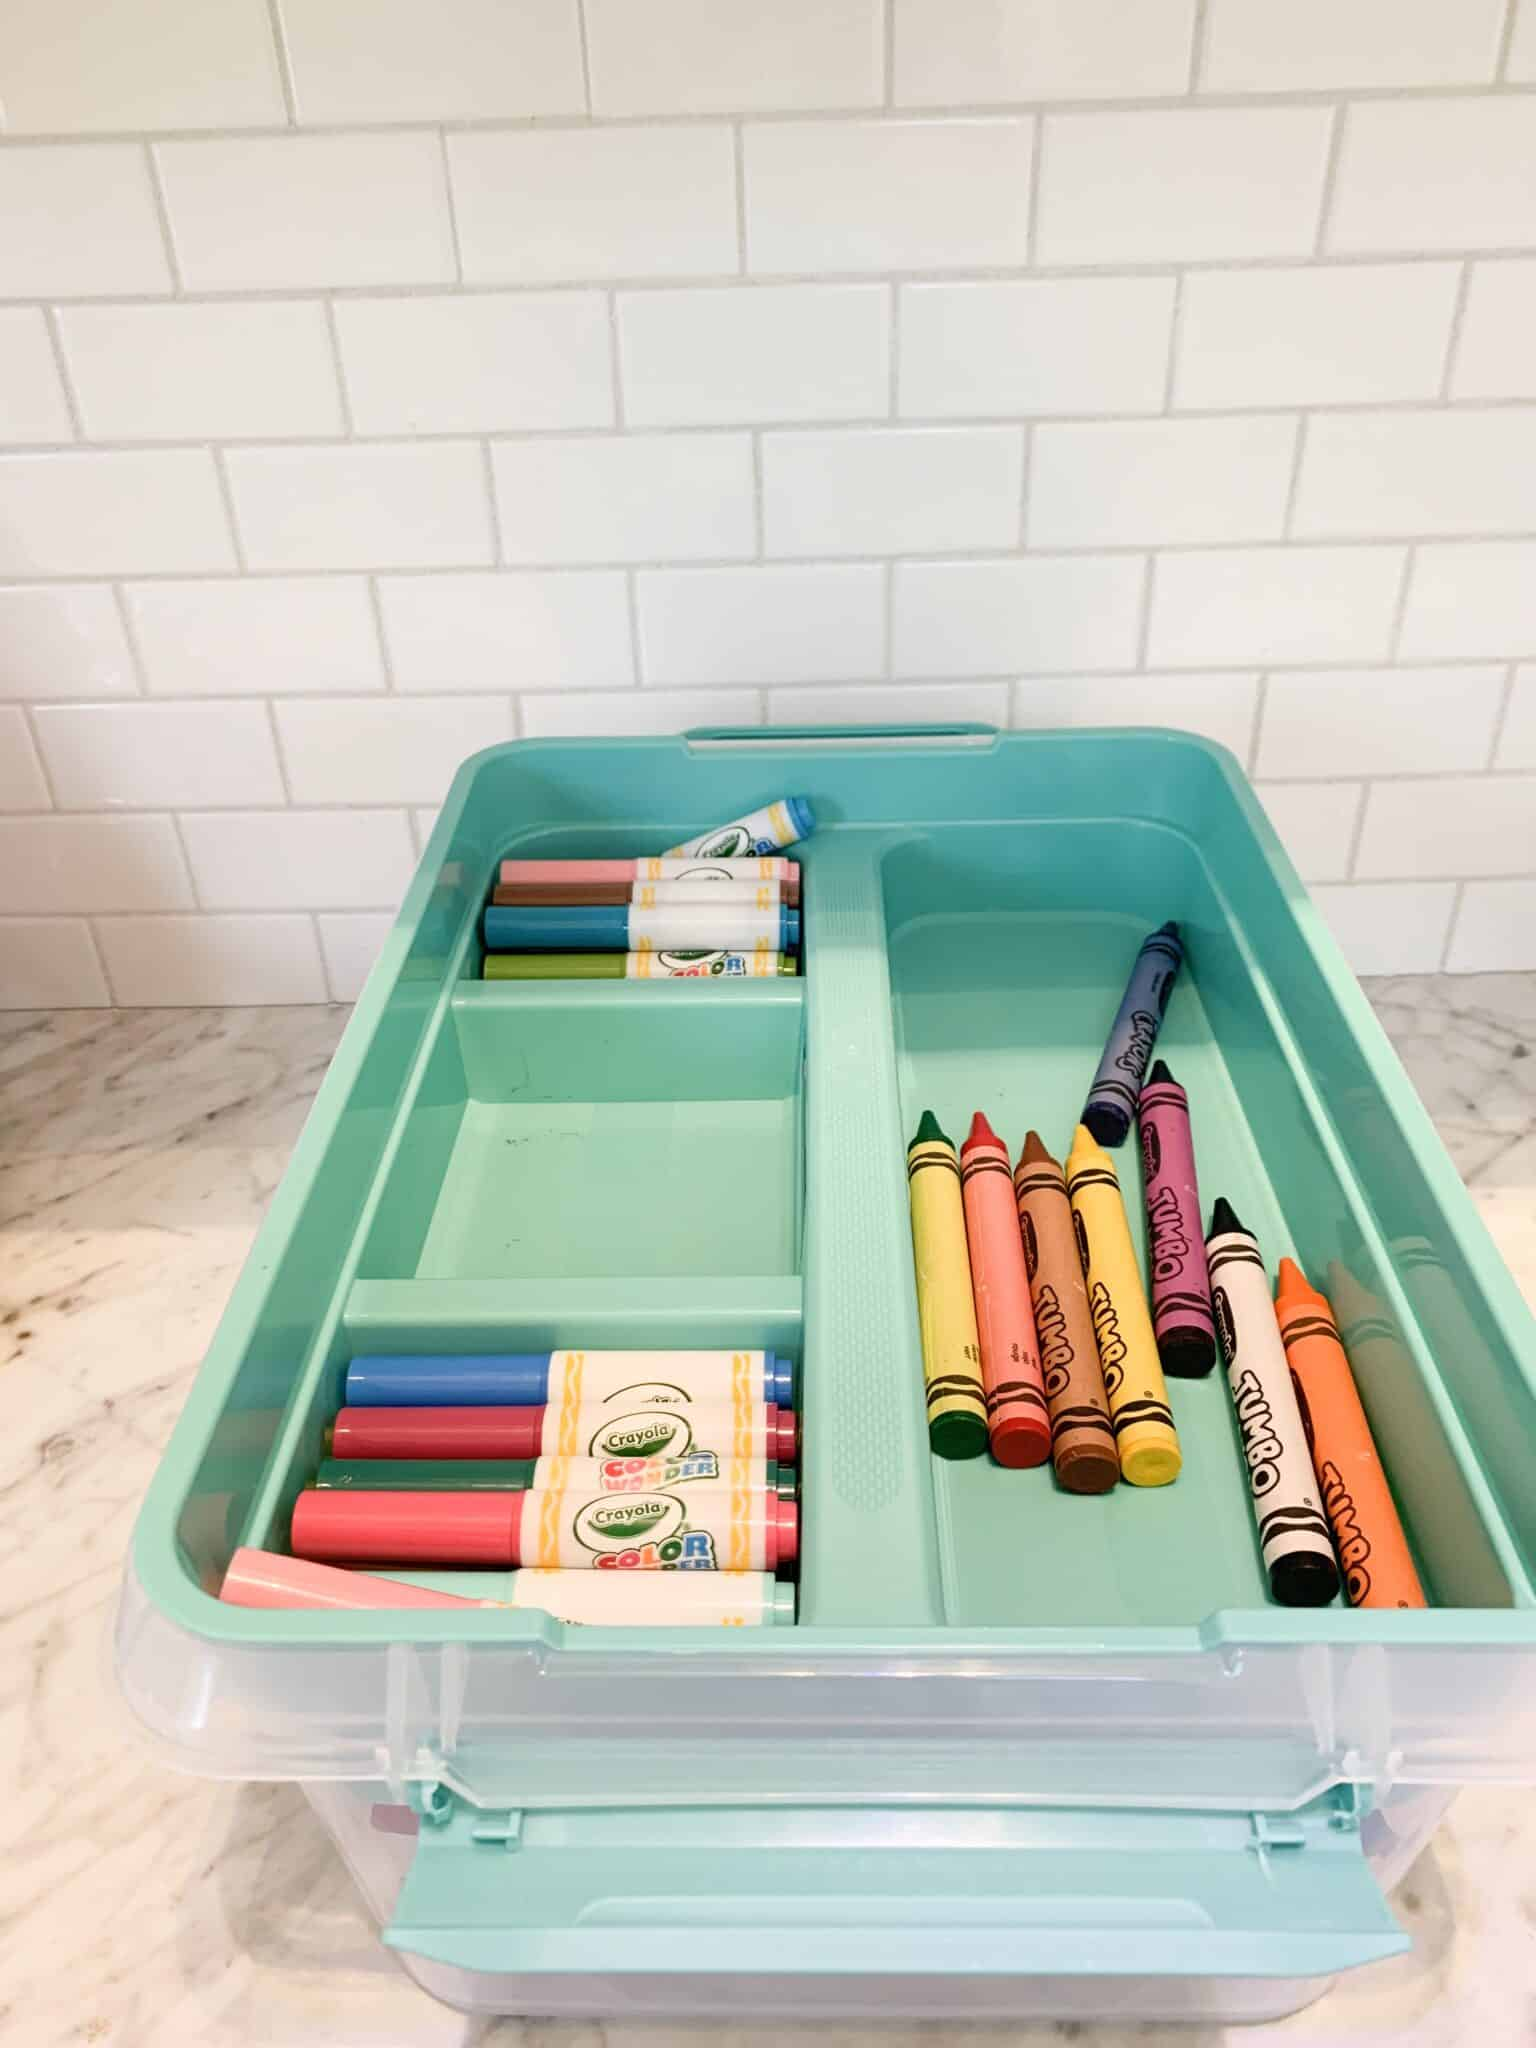 Bin filled with easy kids crafts